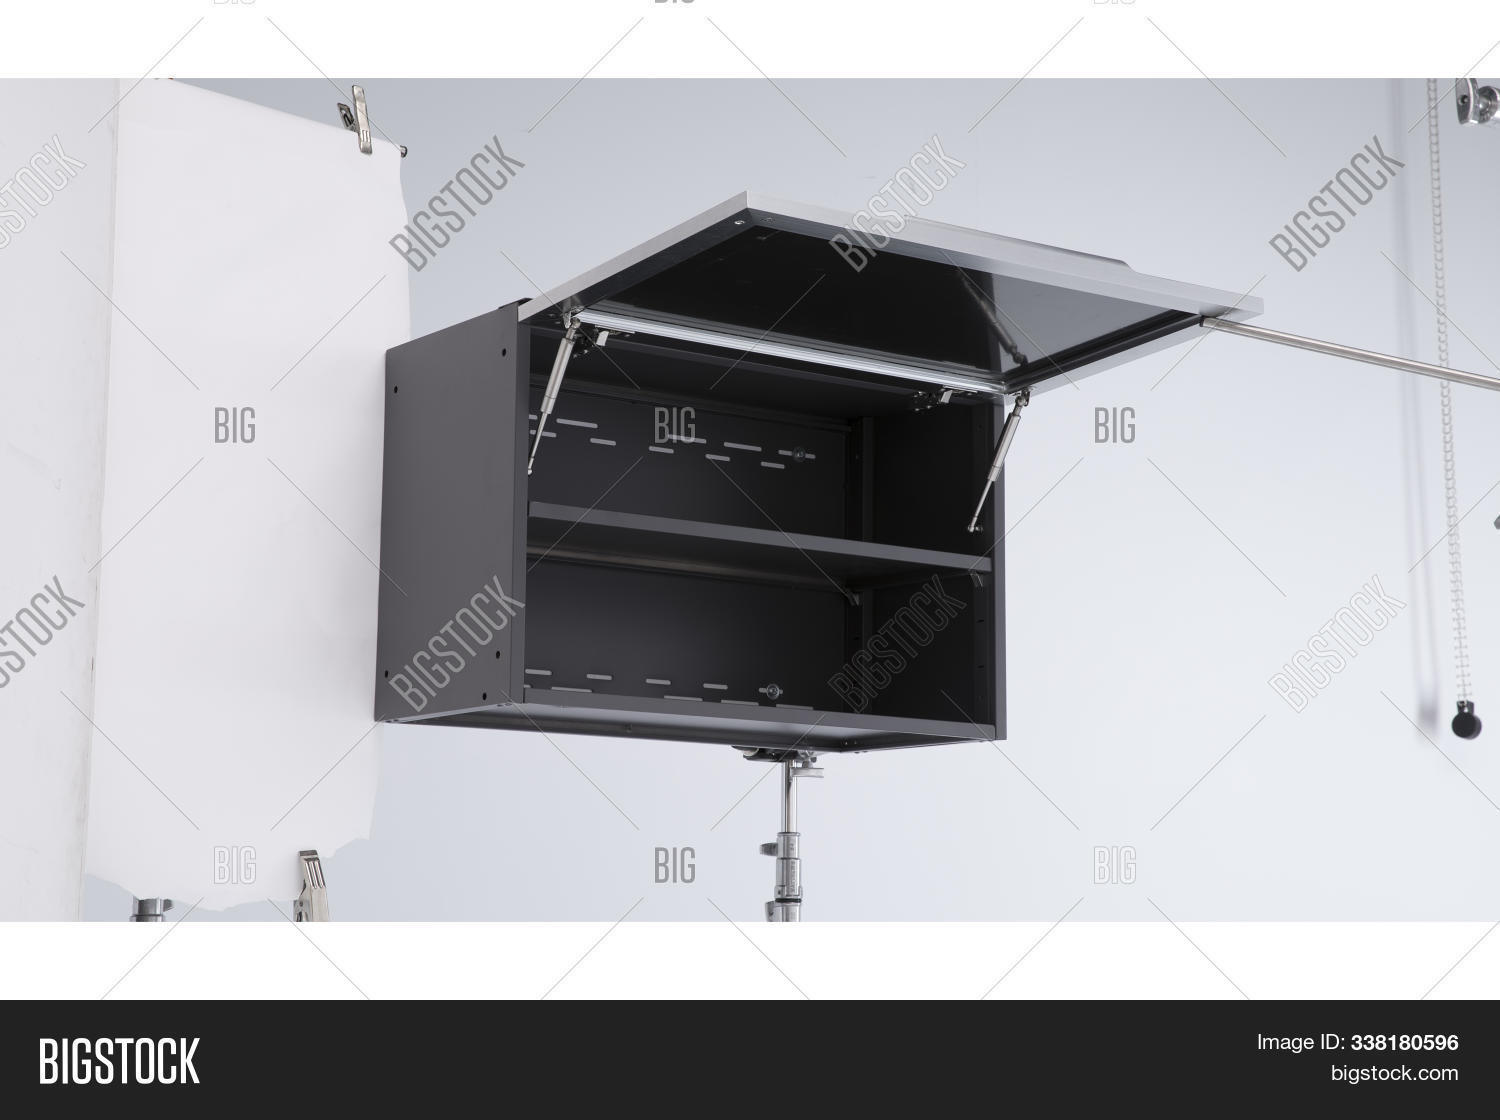 Wall Mounted Drawer Image Photo Free Trial Bigstock